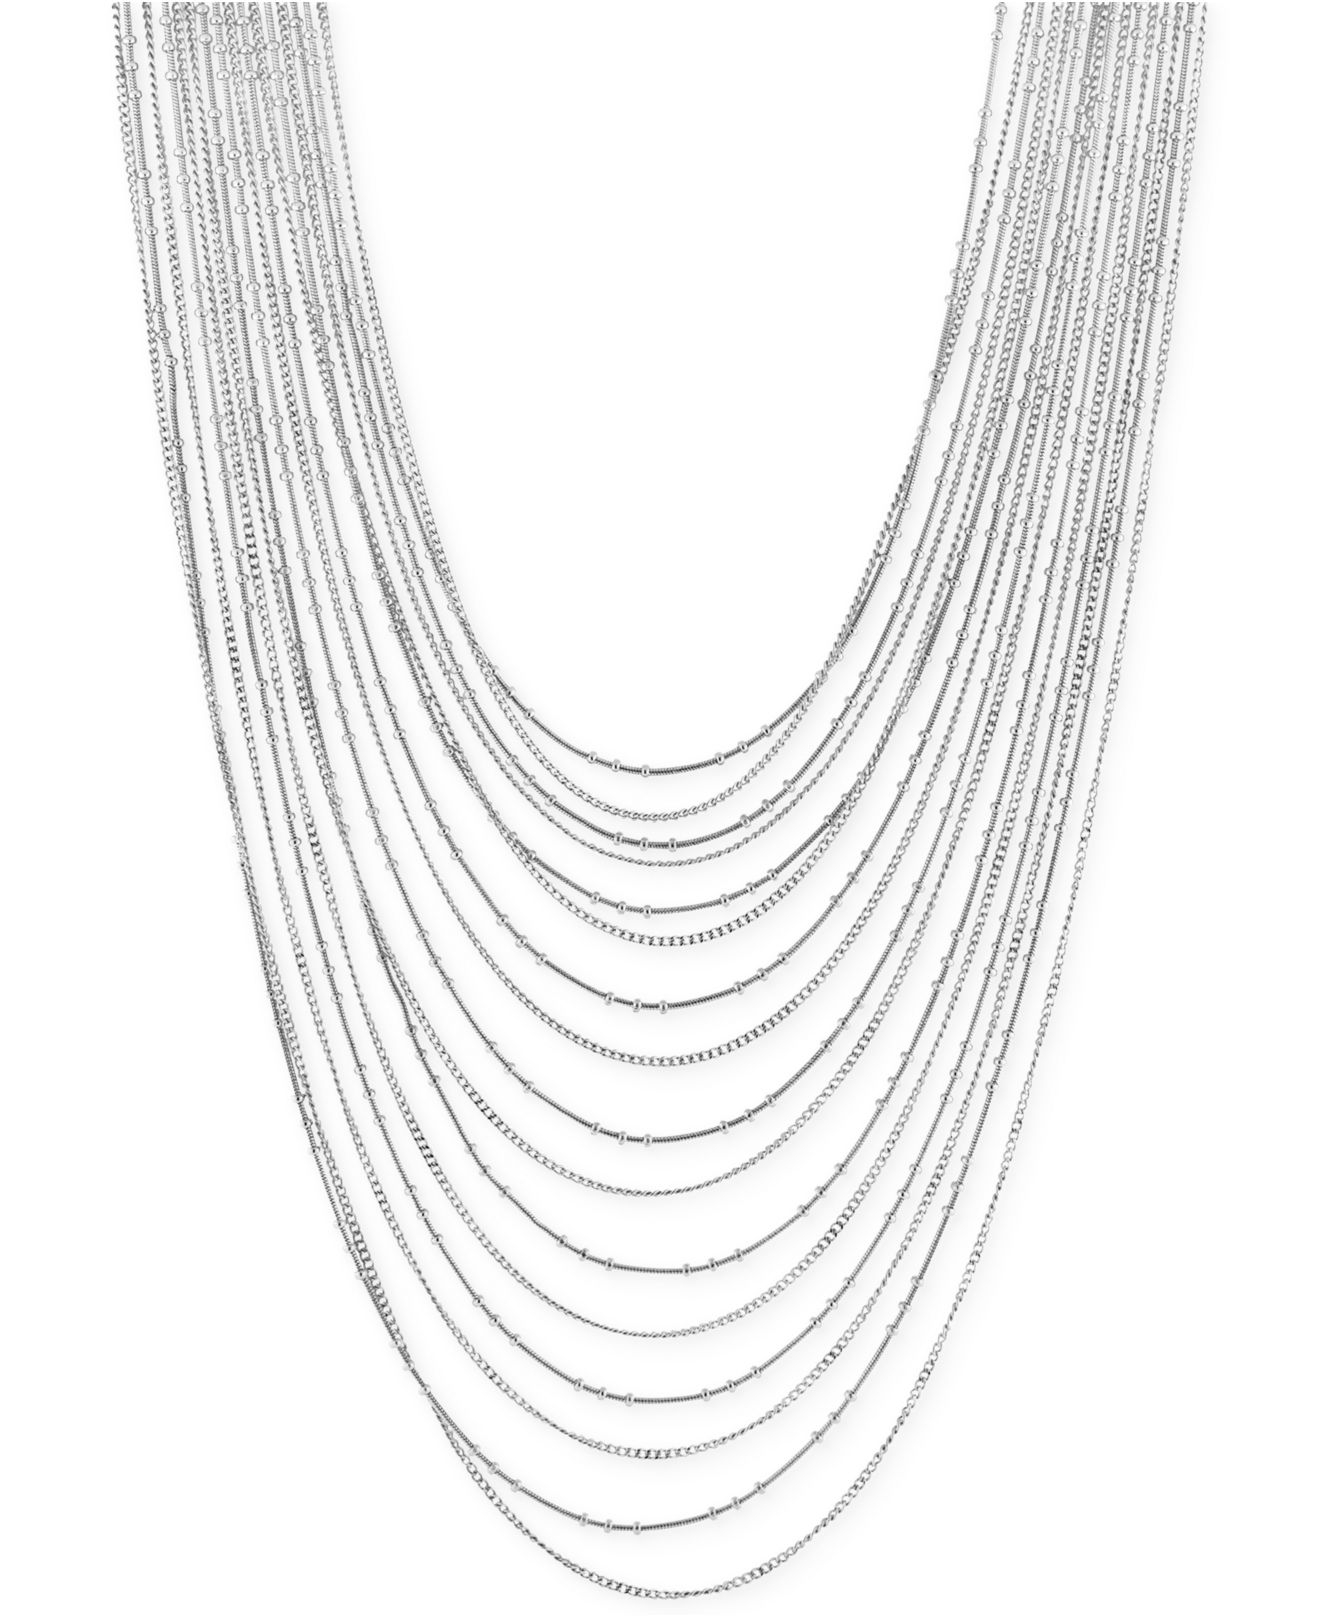 mariacanale shopify multi proto fringe products sterling chain necklace canale row